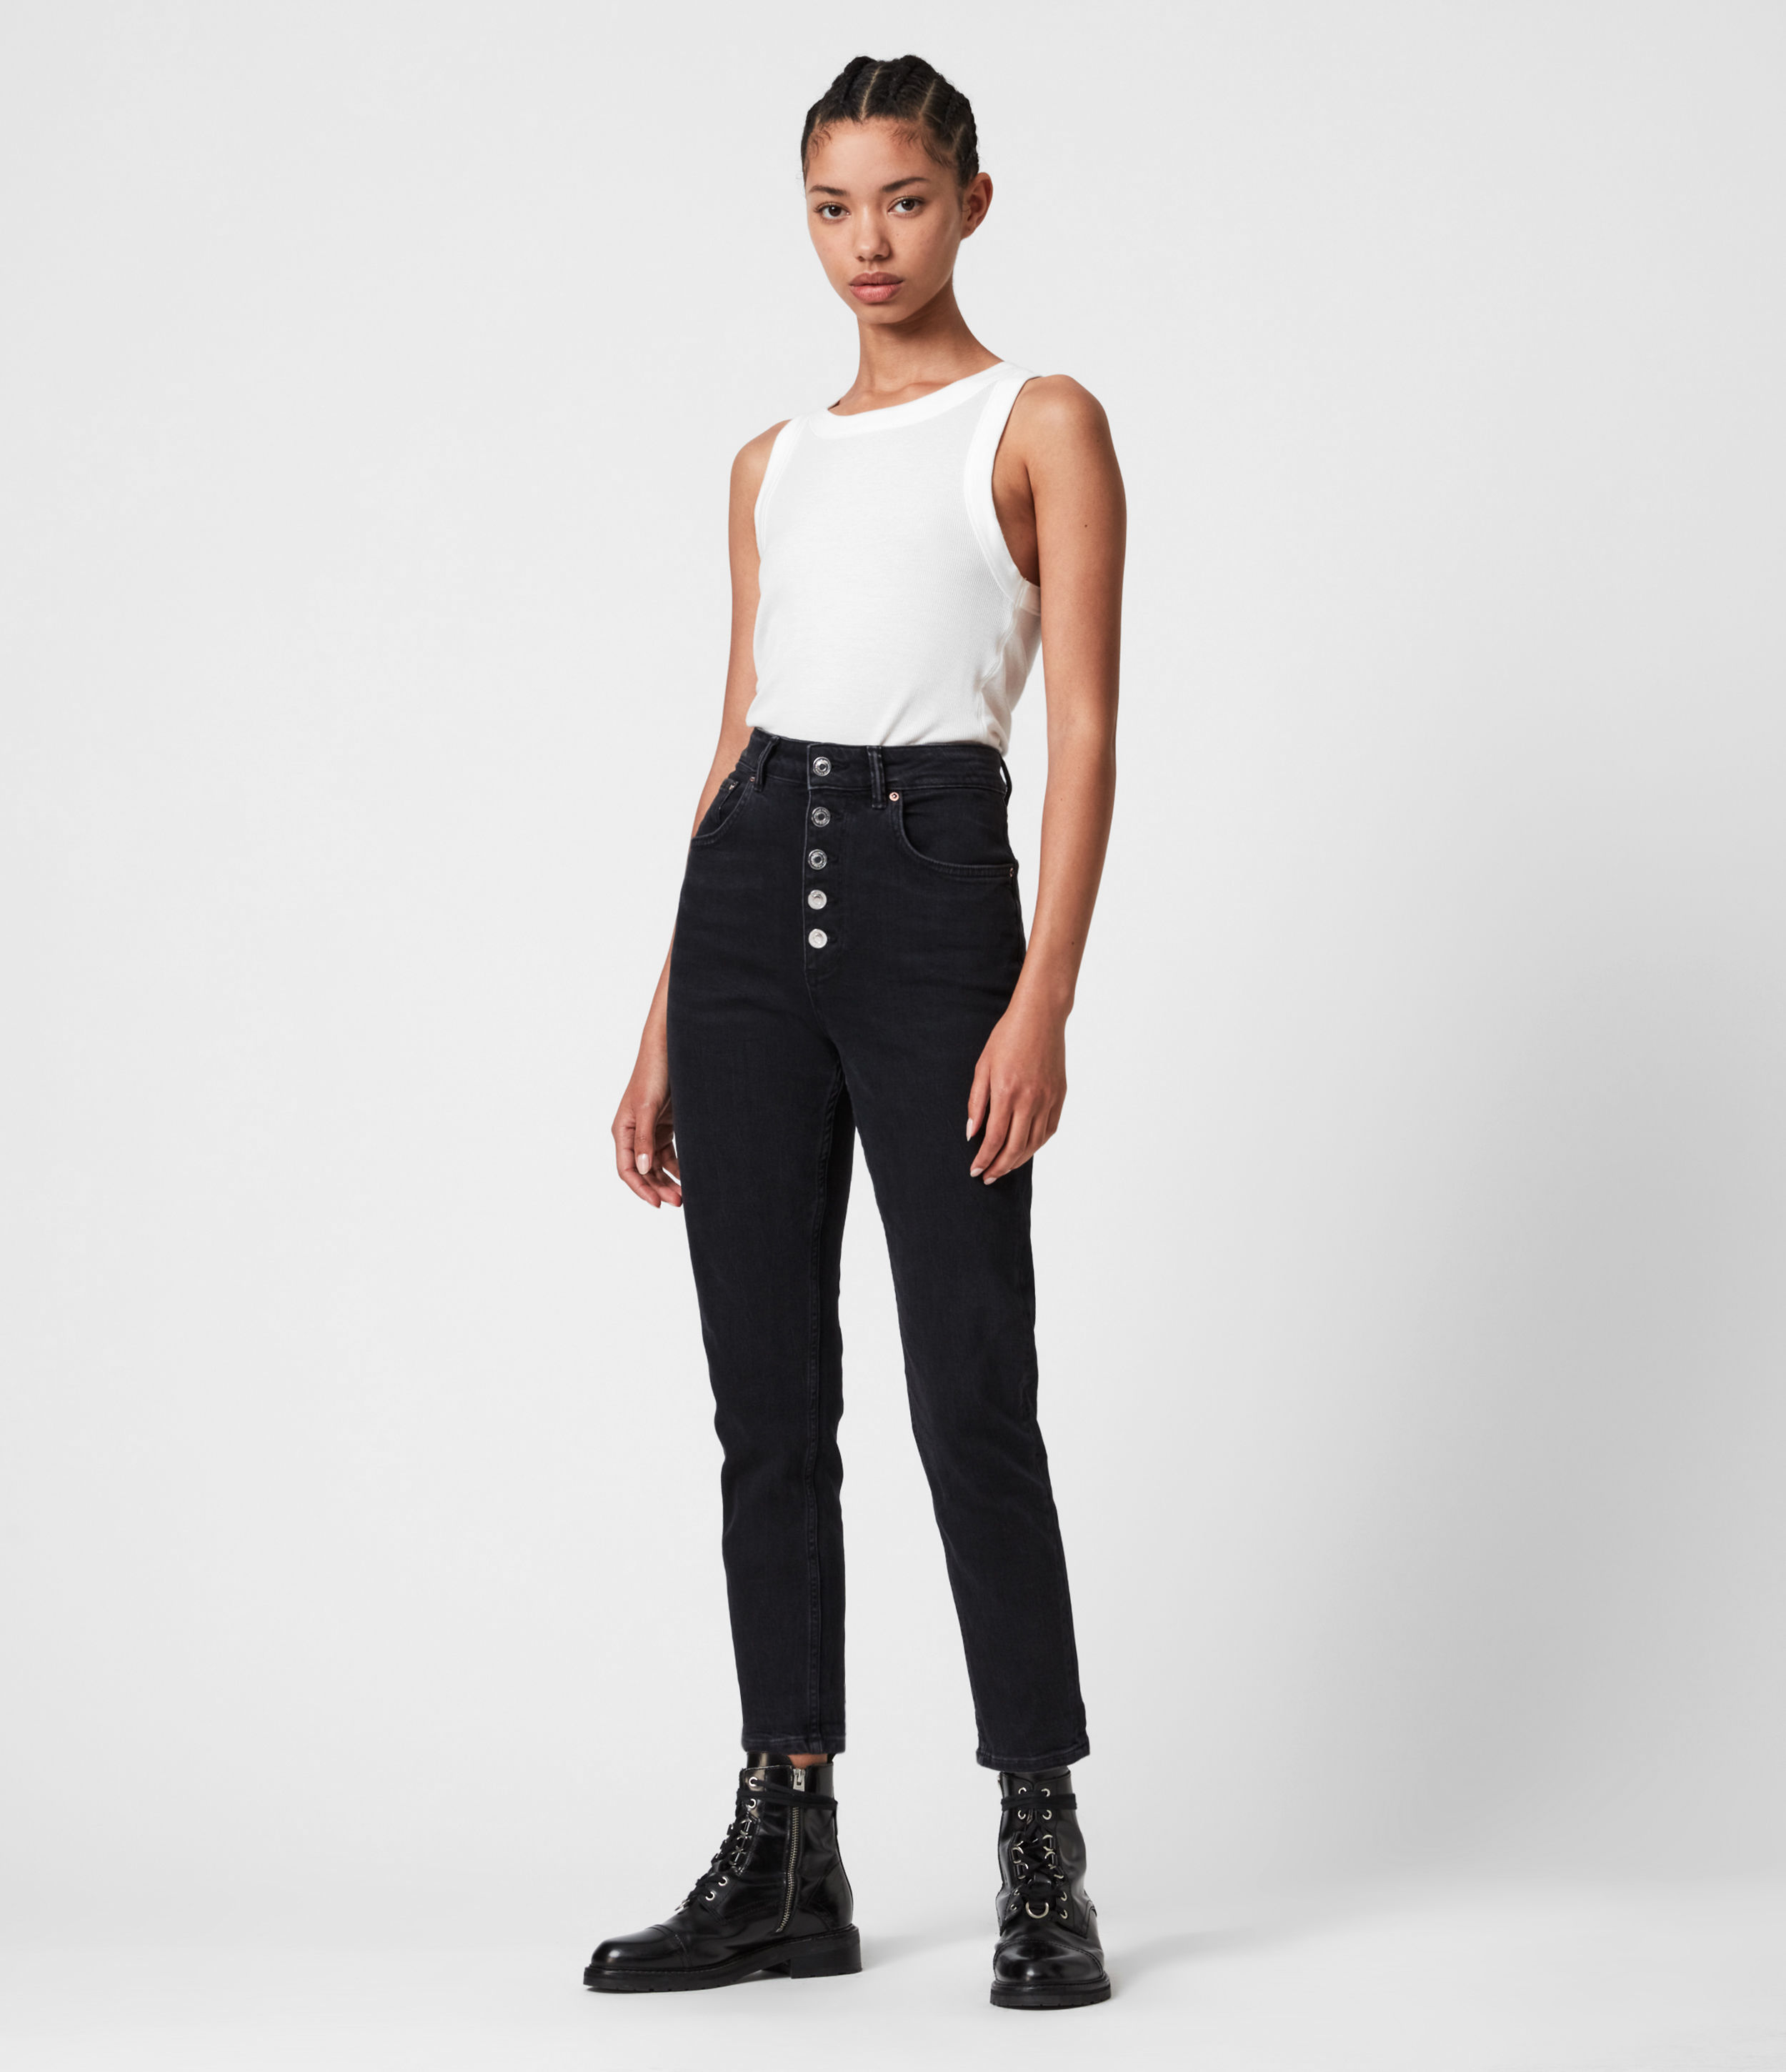 AllSaints Jules High-Rise Slim Jeans, Washed Black